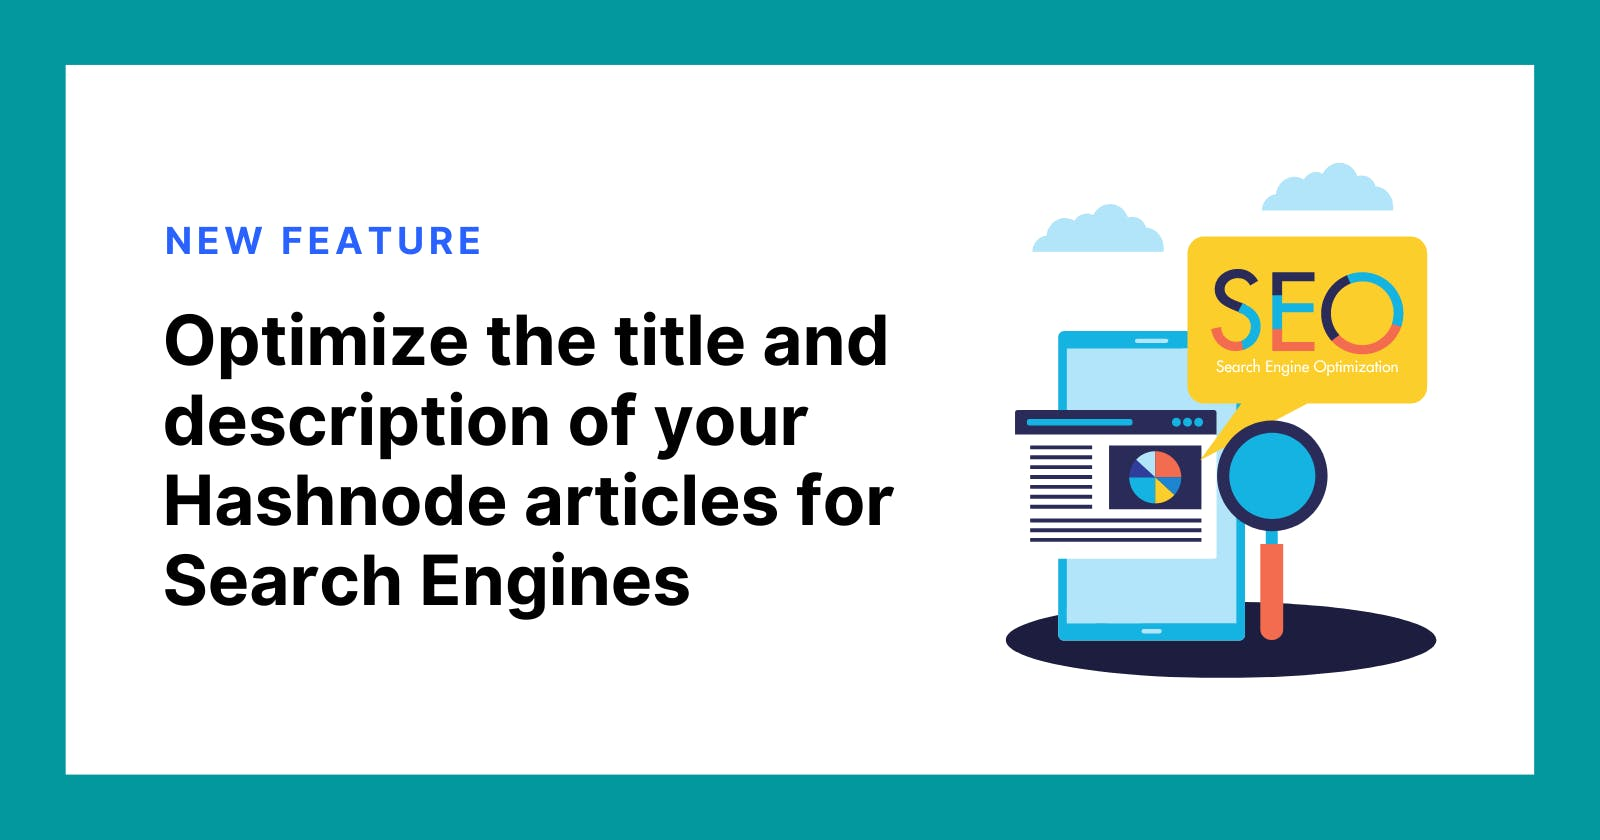 Adding the Ability to Optimize the Title and Description of Your Hashnode Articles for Search Engines